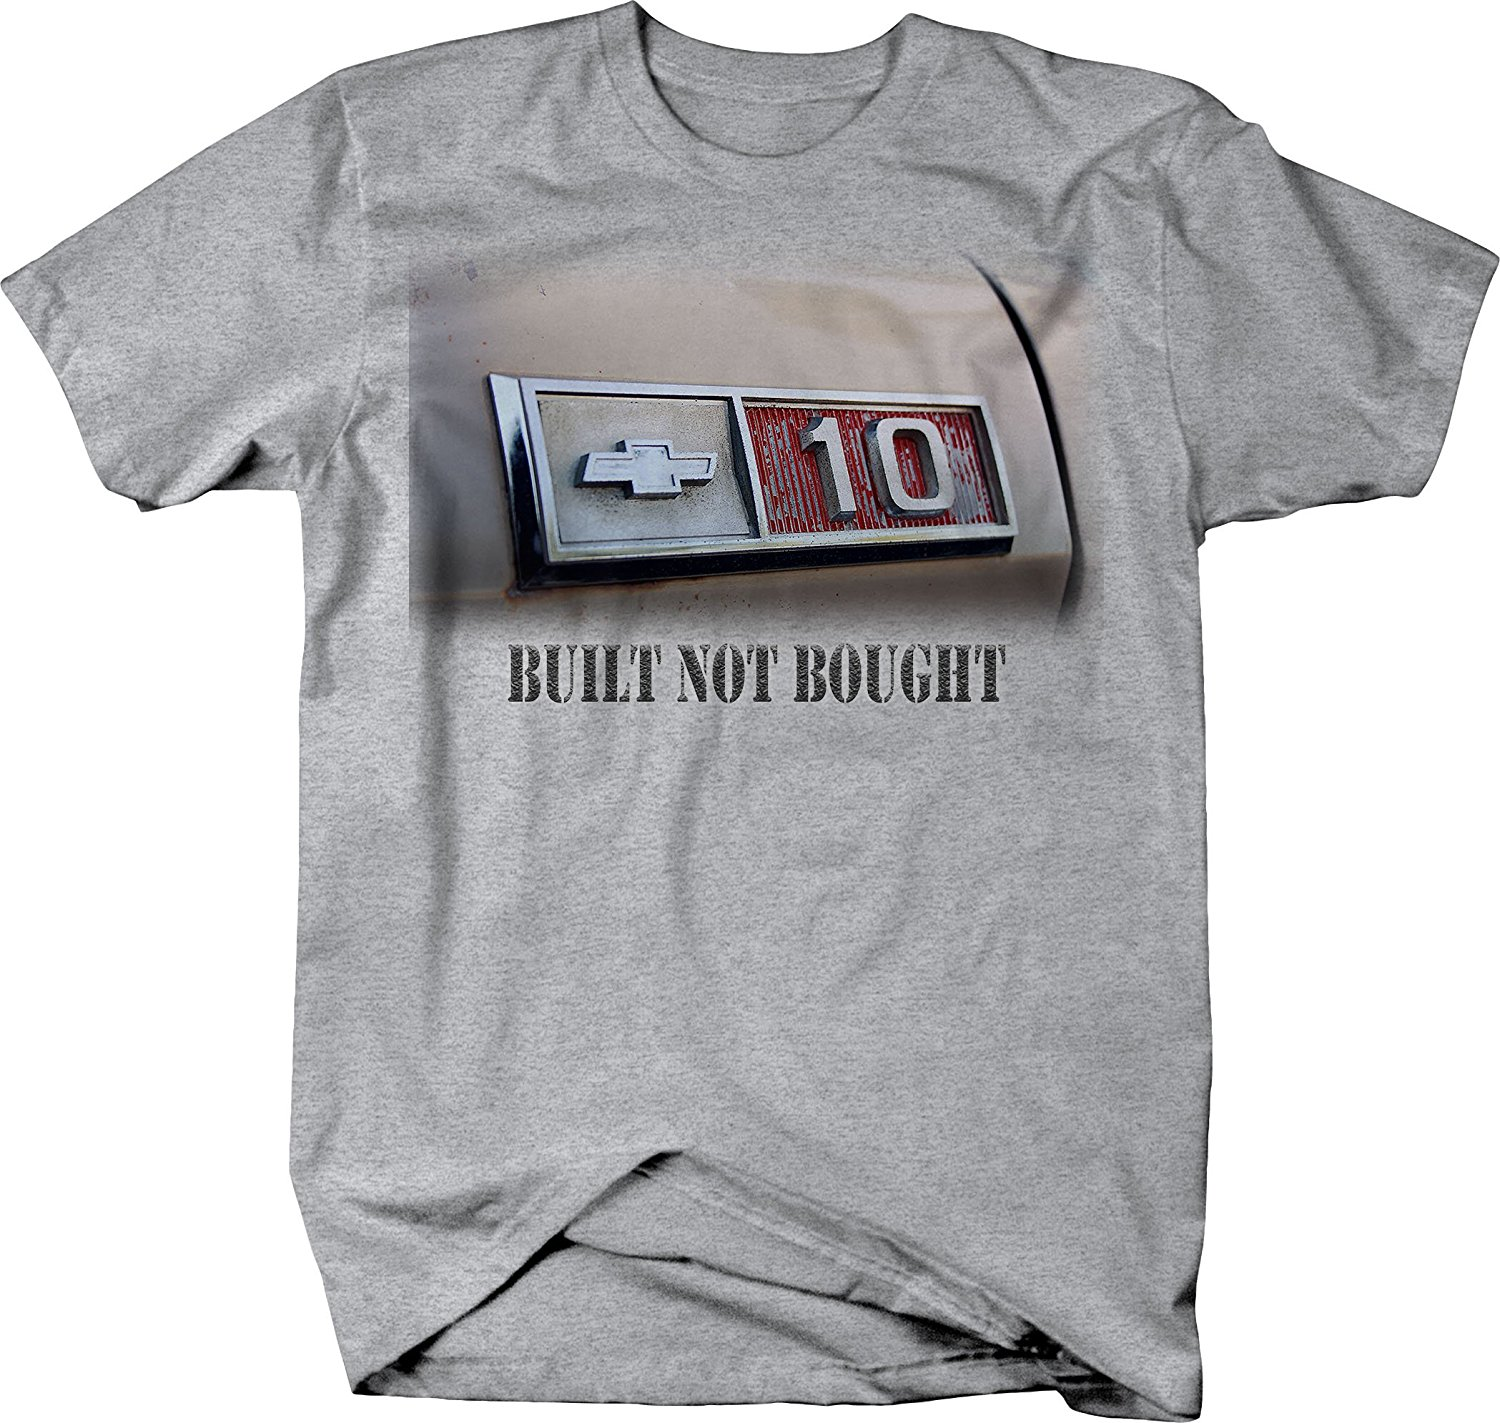 Chevy T Shirts >> Us 12 06 5 Off 2019 Summer Cool Men Tee Shirt Chevy C10 Built Not Bought Vintage 1970 S Truck T Shirt Funny T Shirt In T Shirts From Men S Clothing